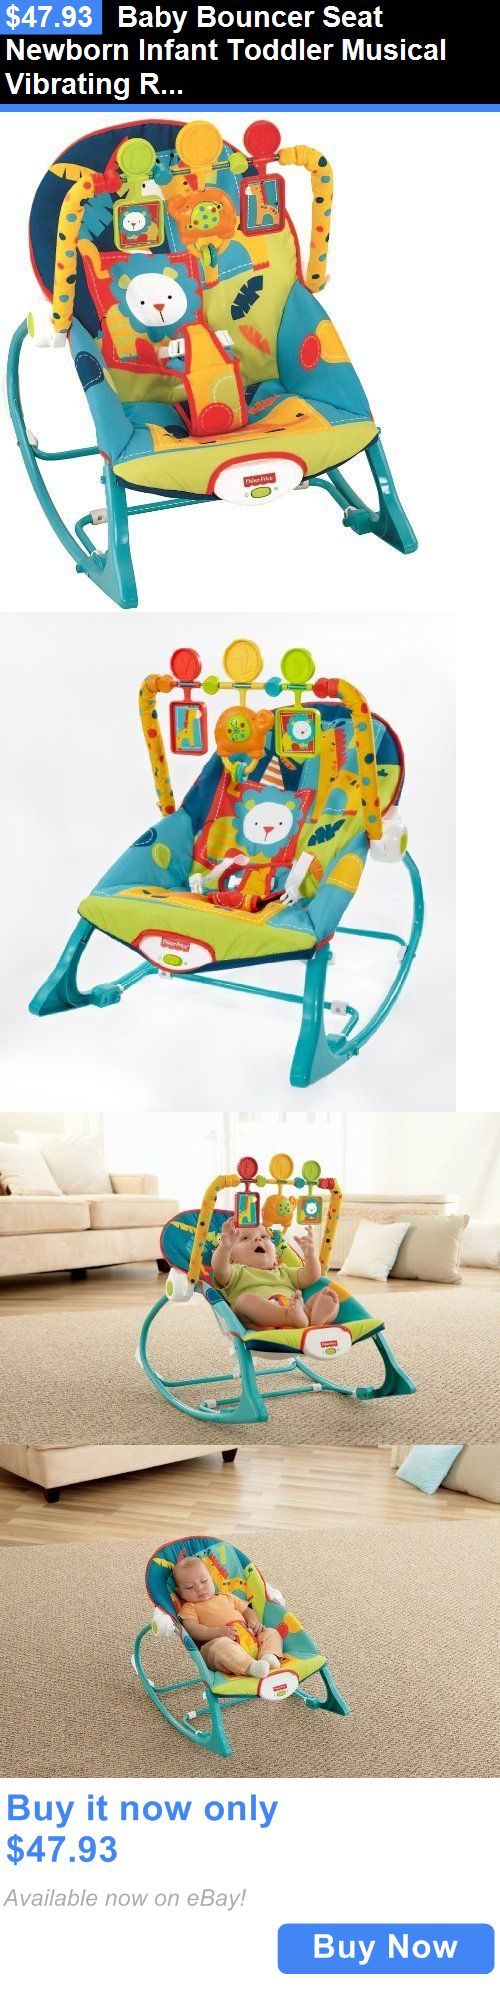 Uncategorized fisher price comfort curve bouncer new free shipping ebay - Baby Baby Bouncer Seat Newborn Infant Toddler Musical Vibrating Rocker Chair Gift New Buy It